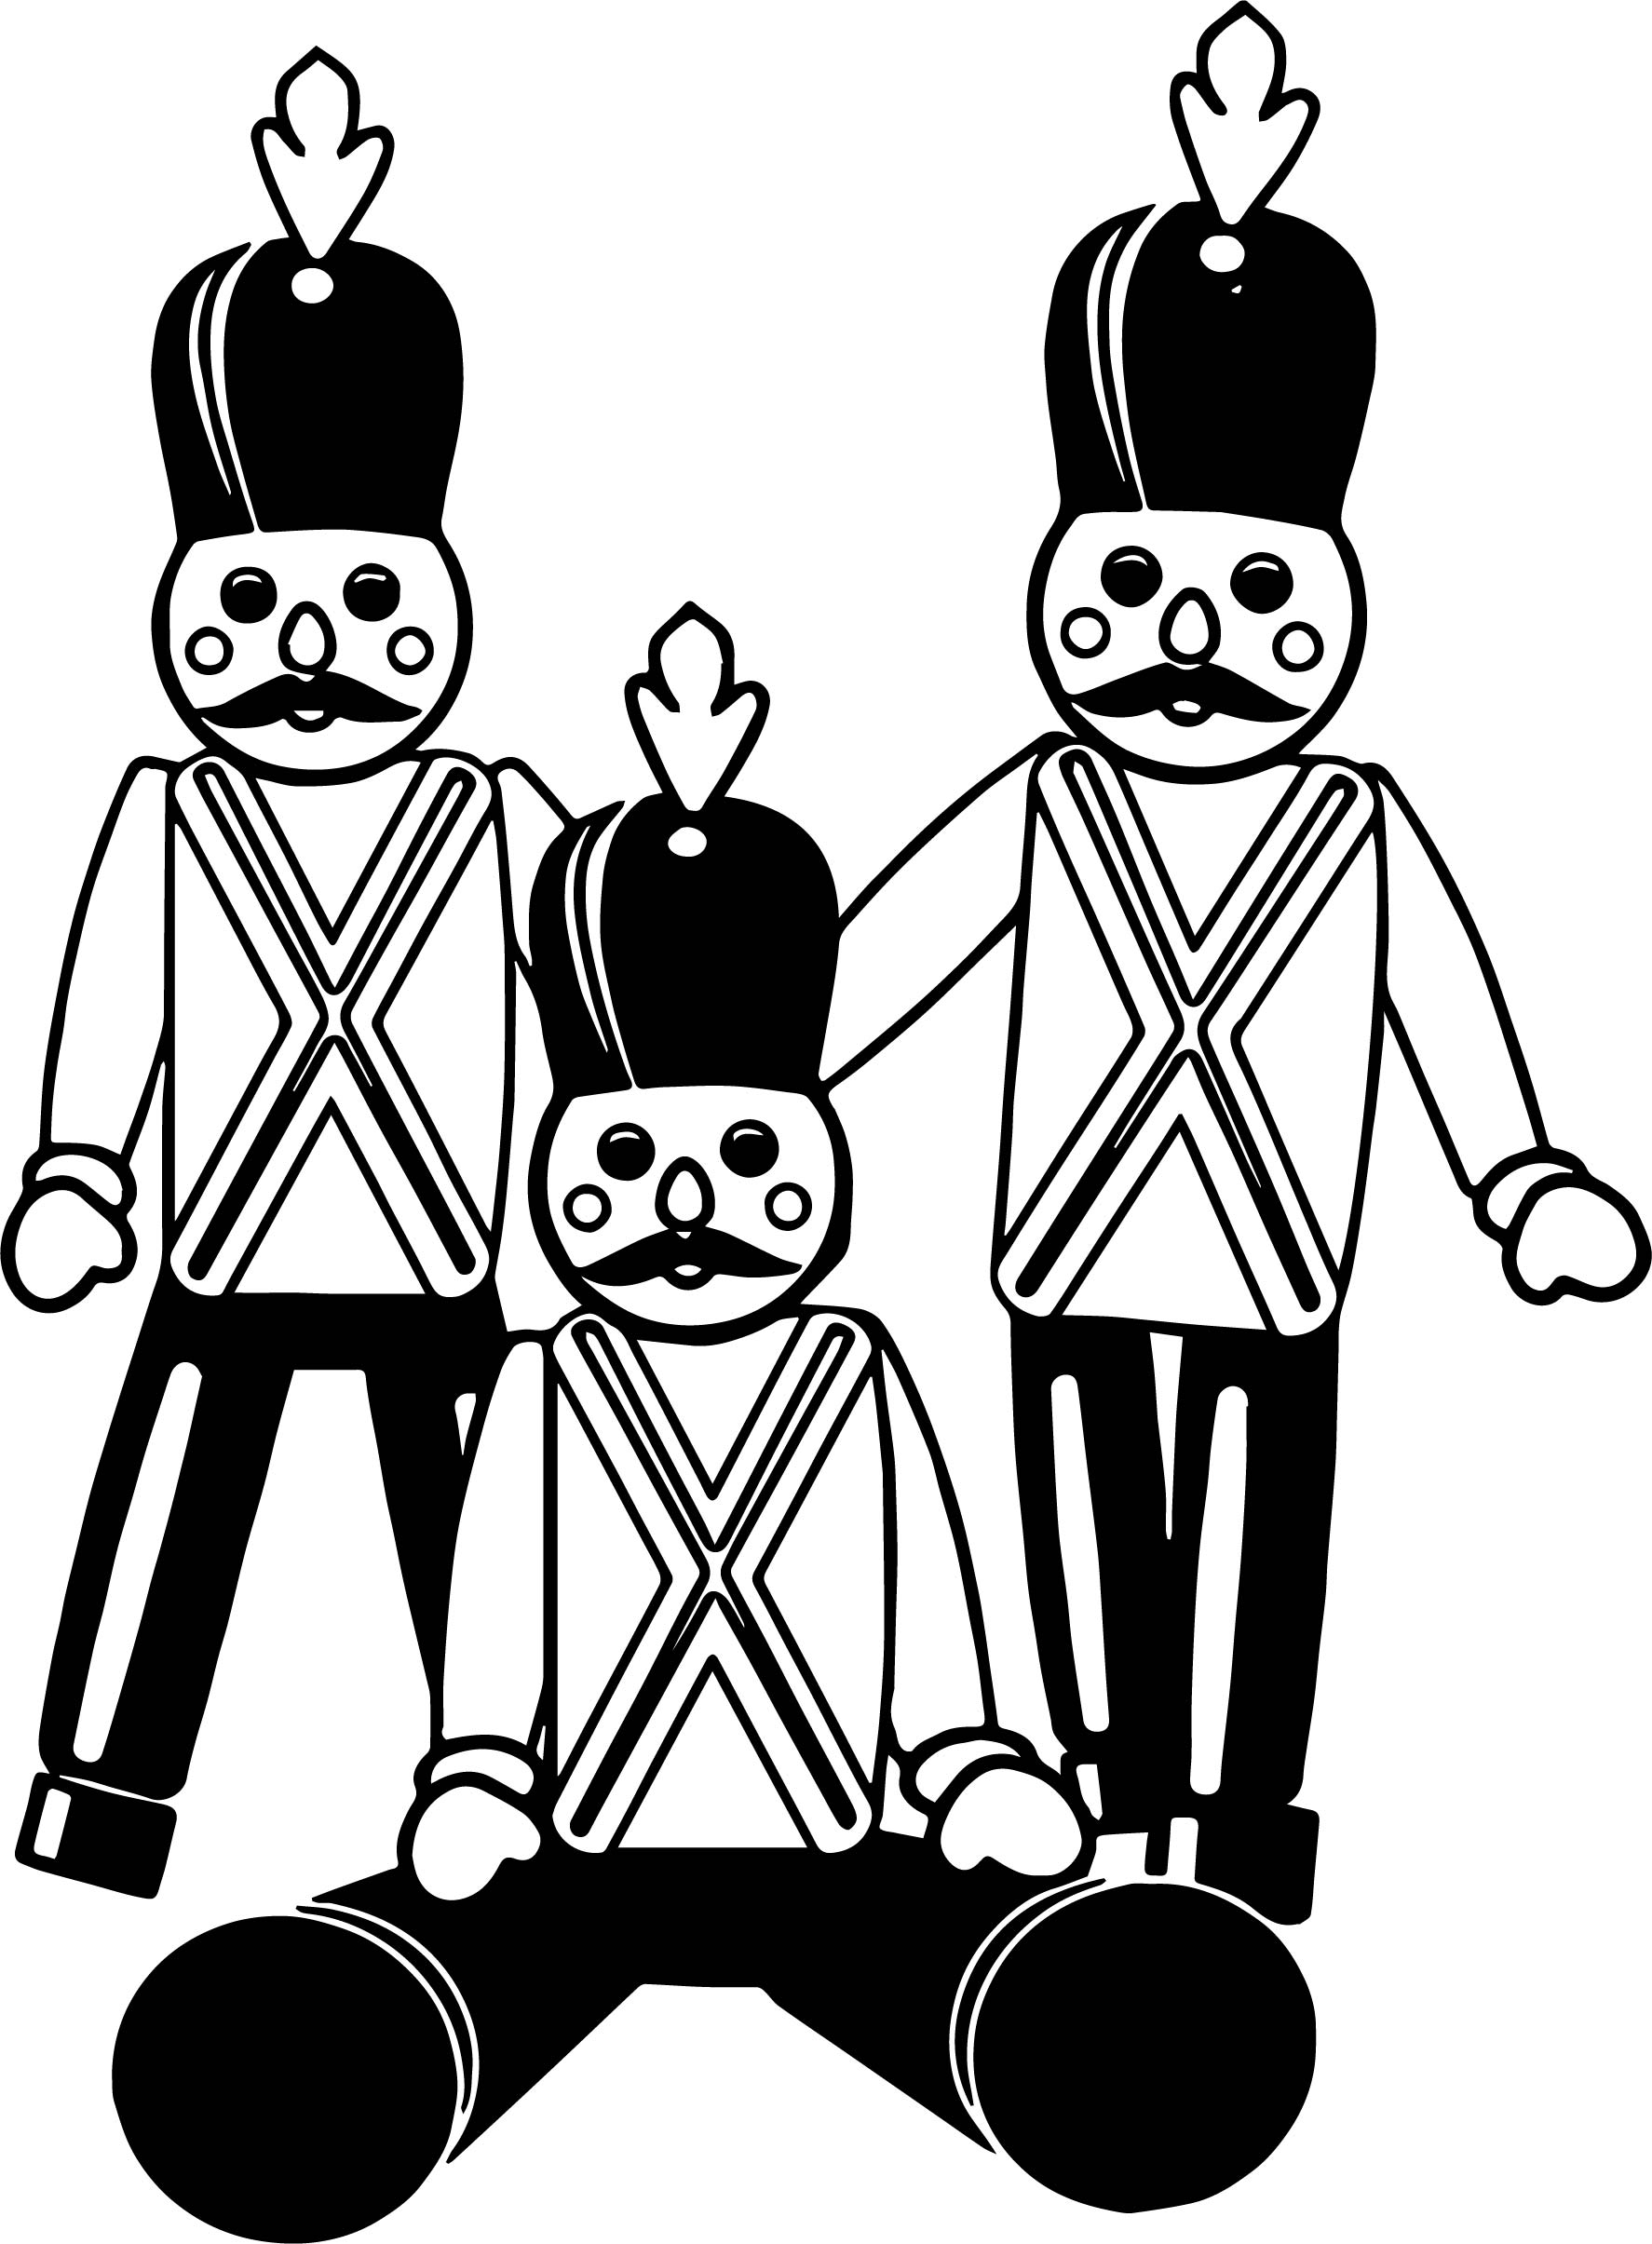 Three Toy Soldiers Coloring Page